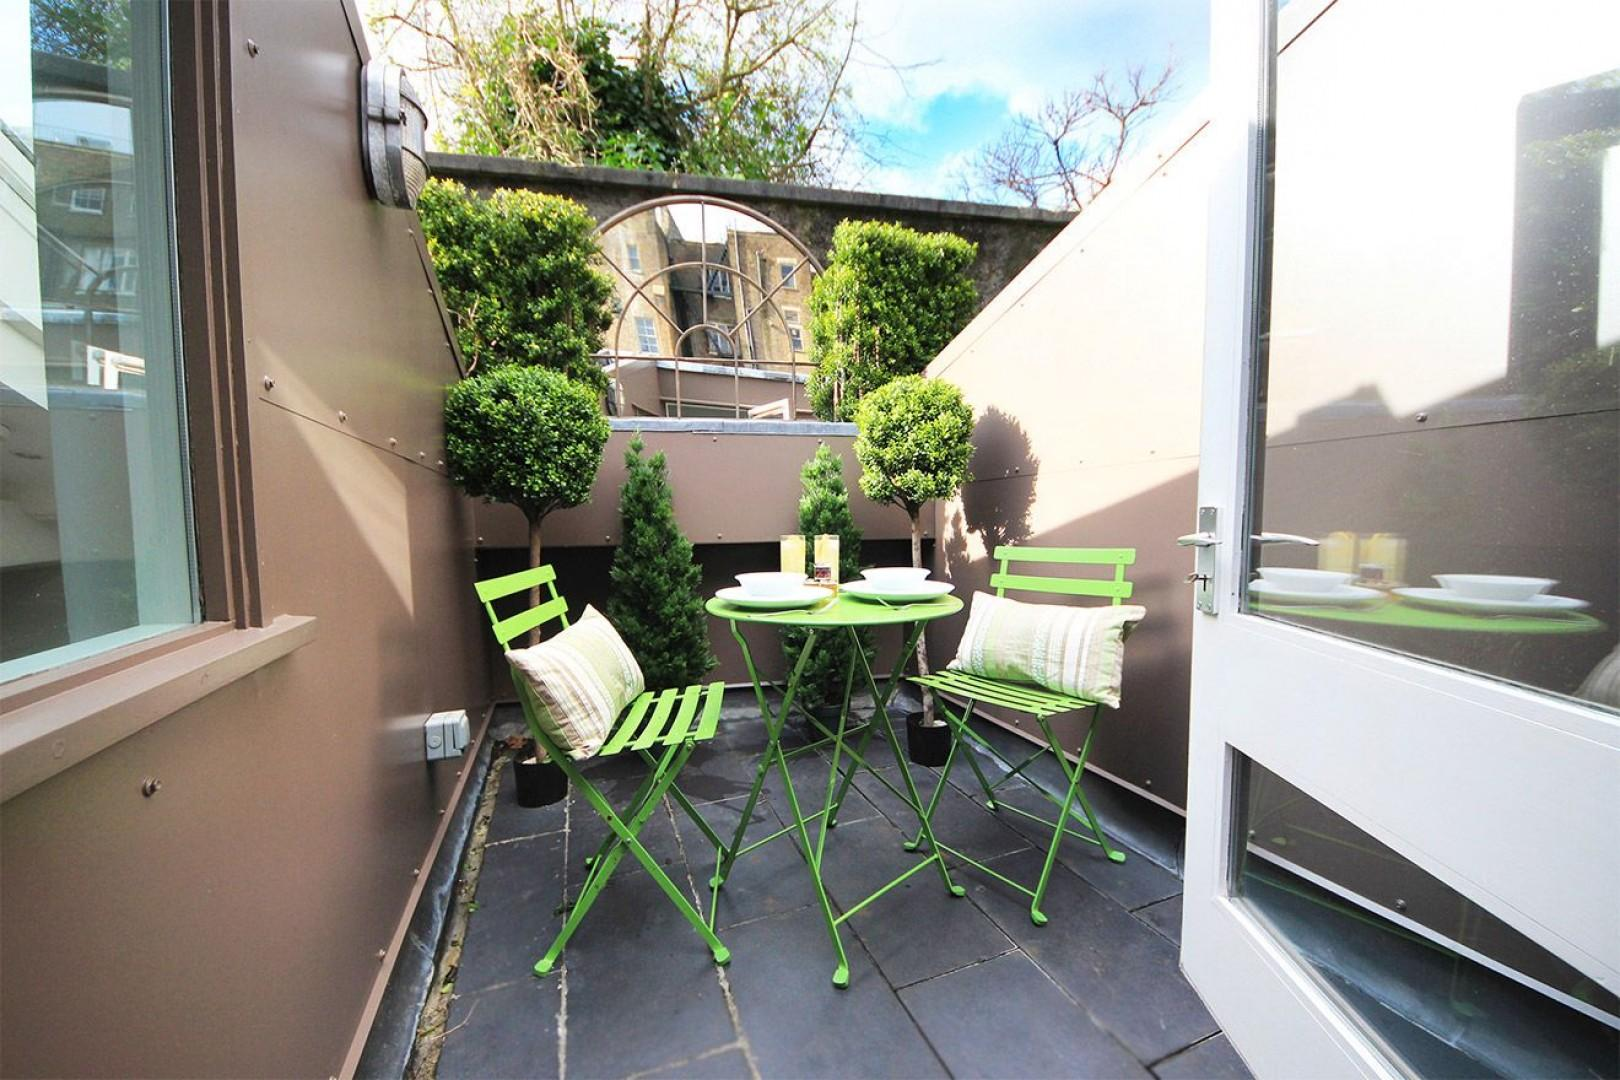 Step out of the study nook to this charming terrace